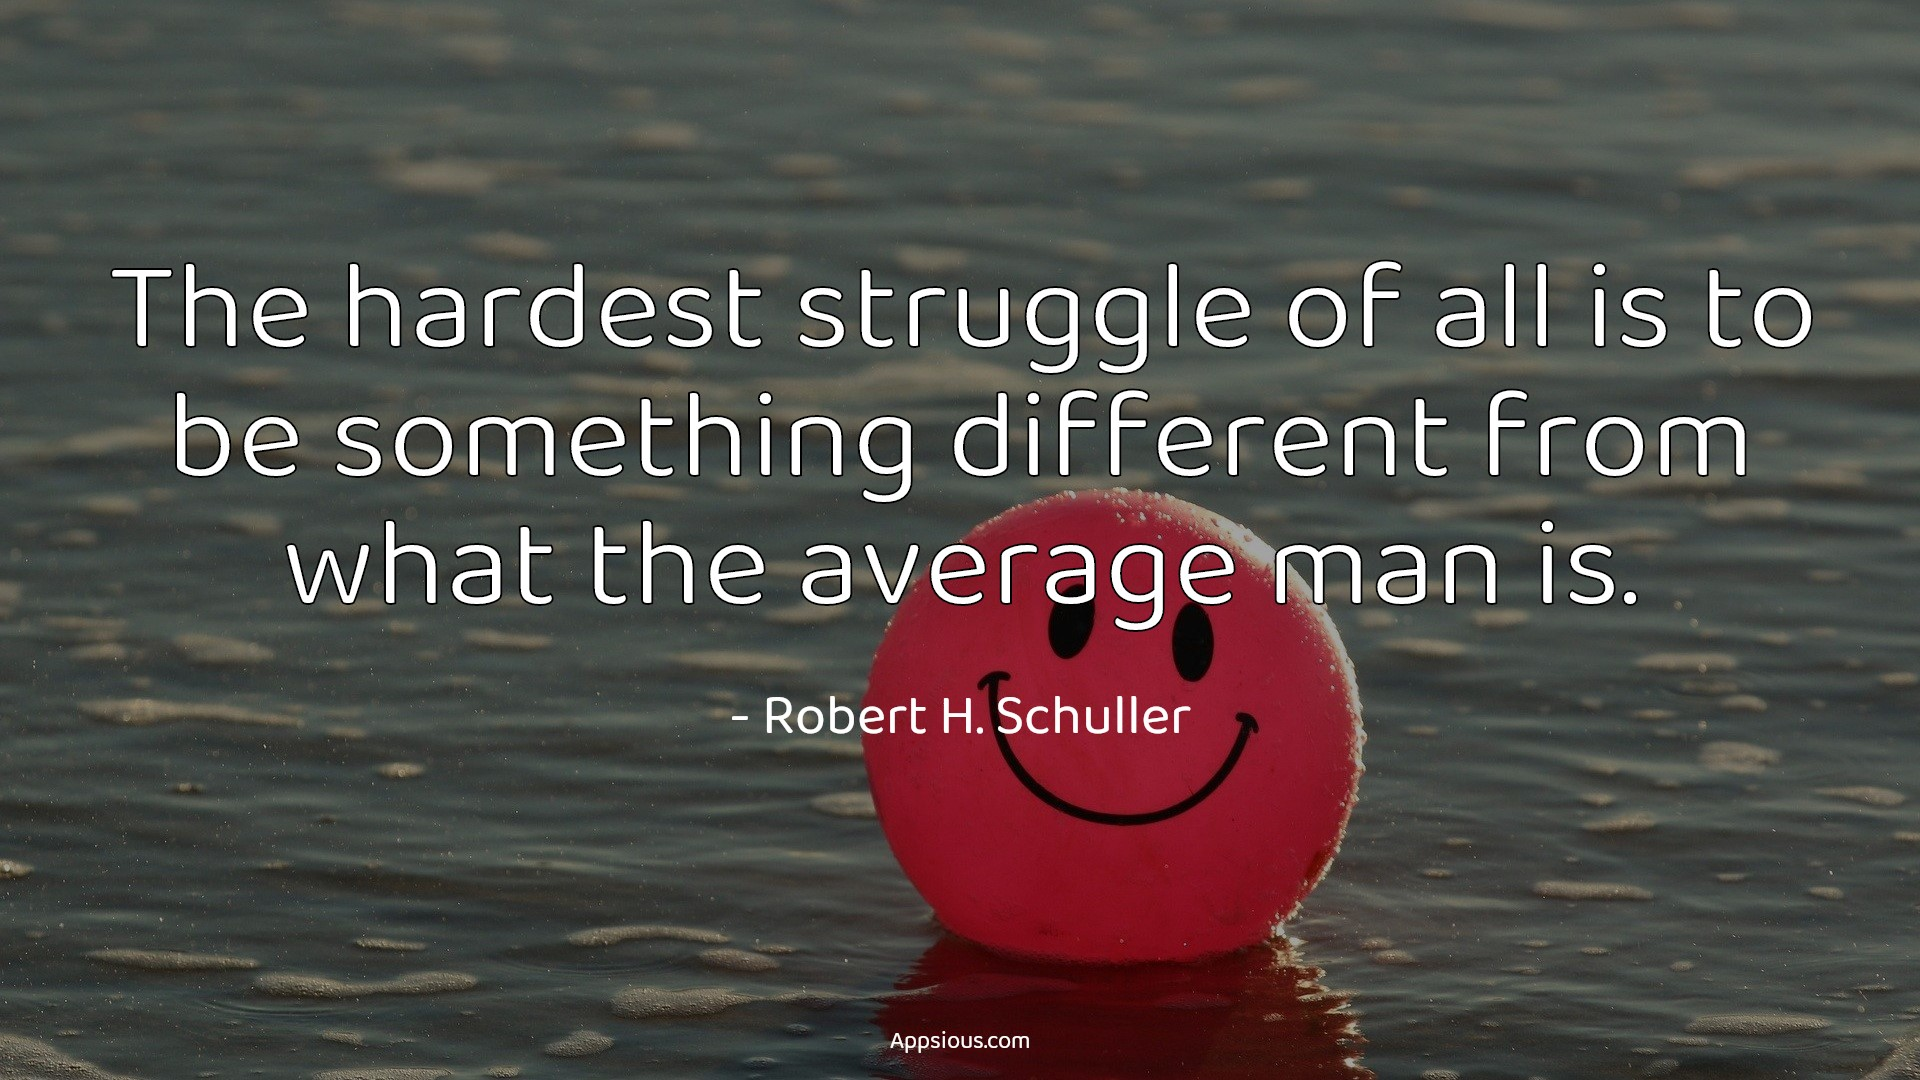 The hardest struggle of all is to be something different from what the average man is.